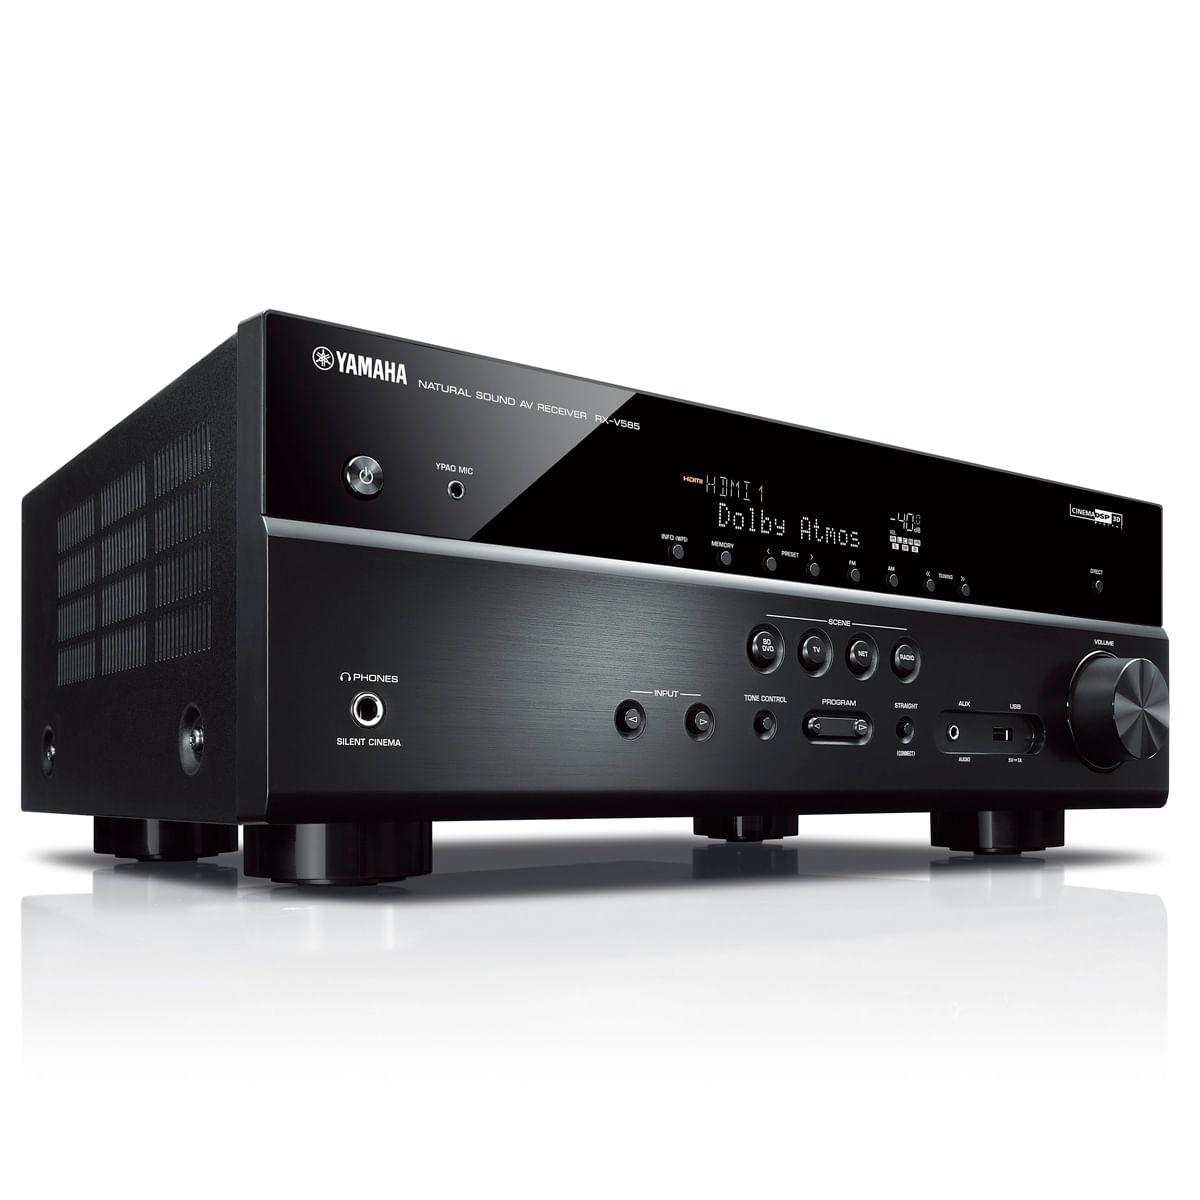 Receiver-Yamaha-RX-V585-7.2ch-Dolby-Atmos-Bluetooth-Wi-Fi-AirPlay-musicCast-4K-UHD-HDR10-Lateral-E